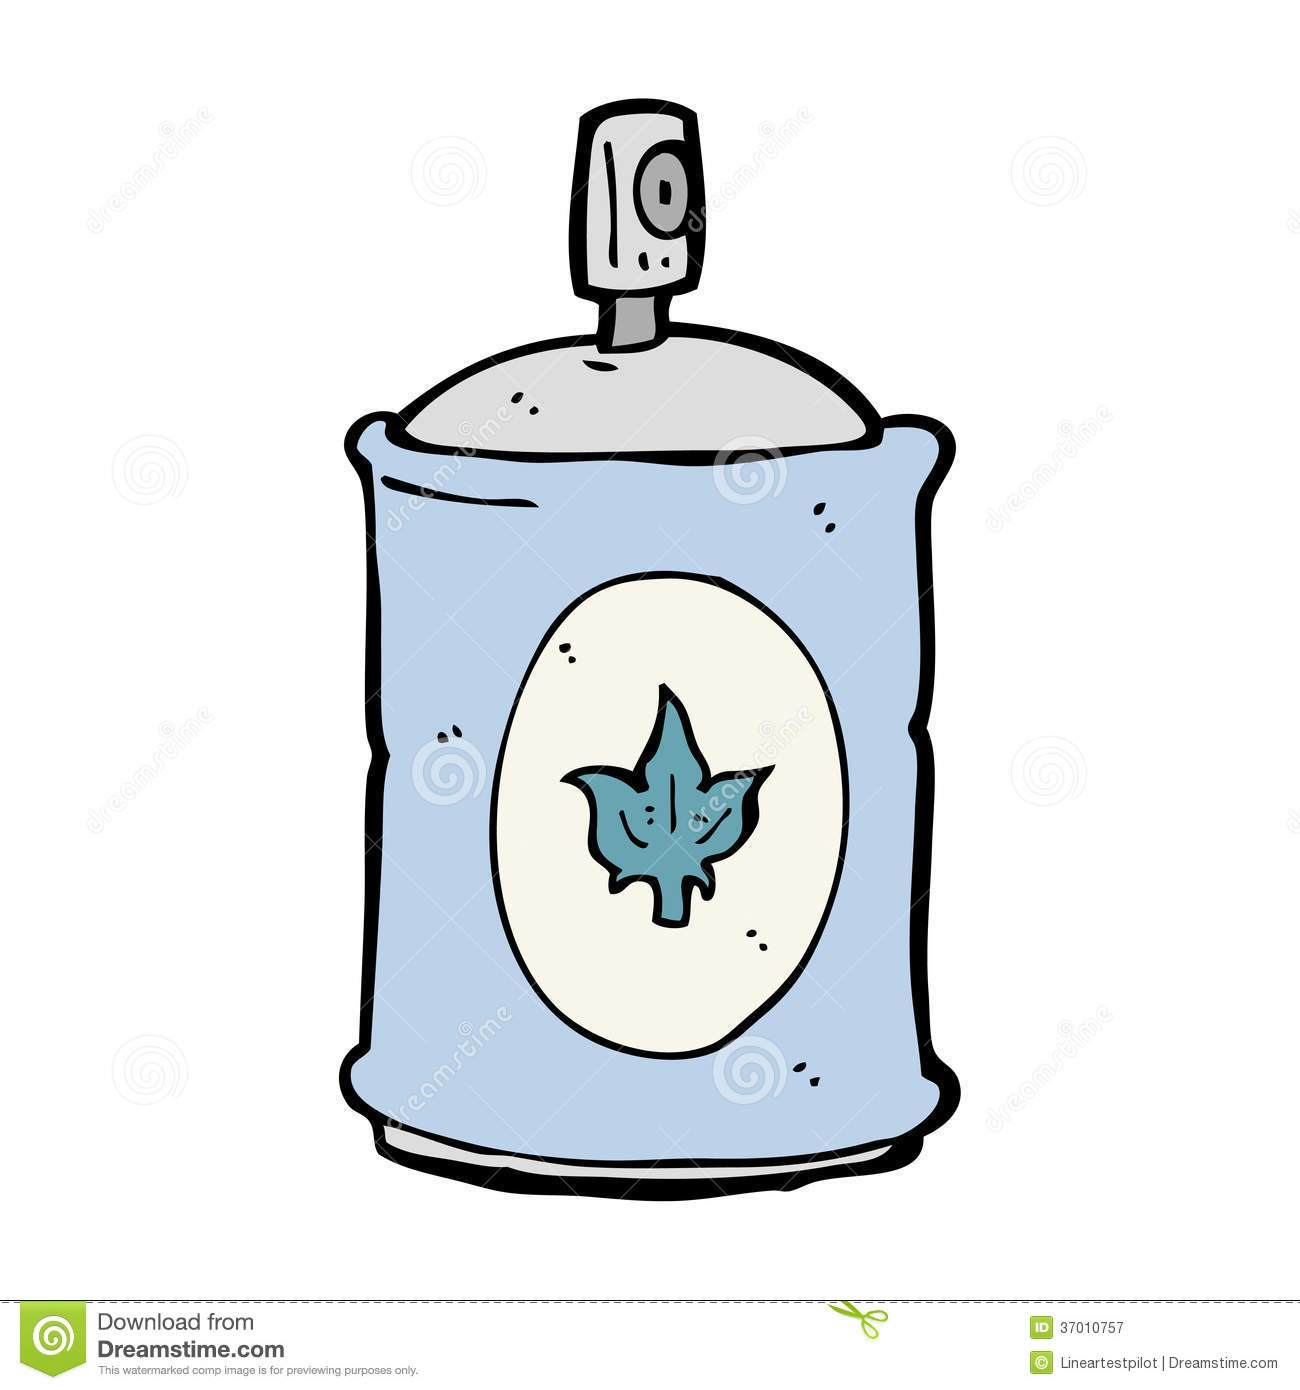 Putting On Deodorant Clipart Cartoon Fragrance Spray Hand #79nrbS.